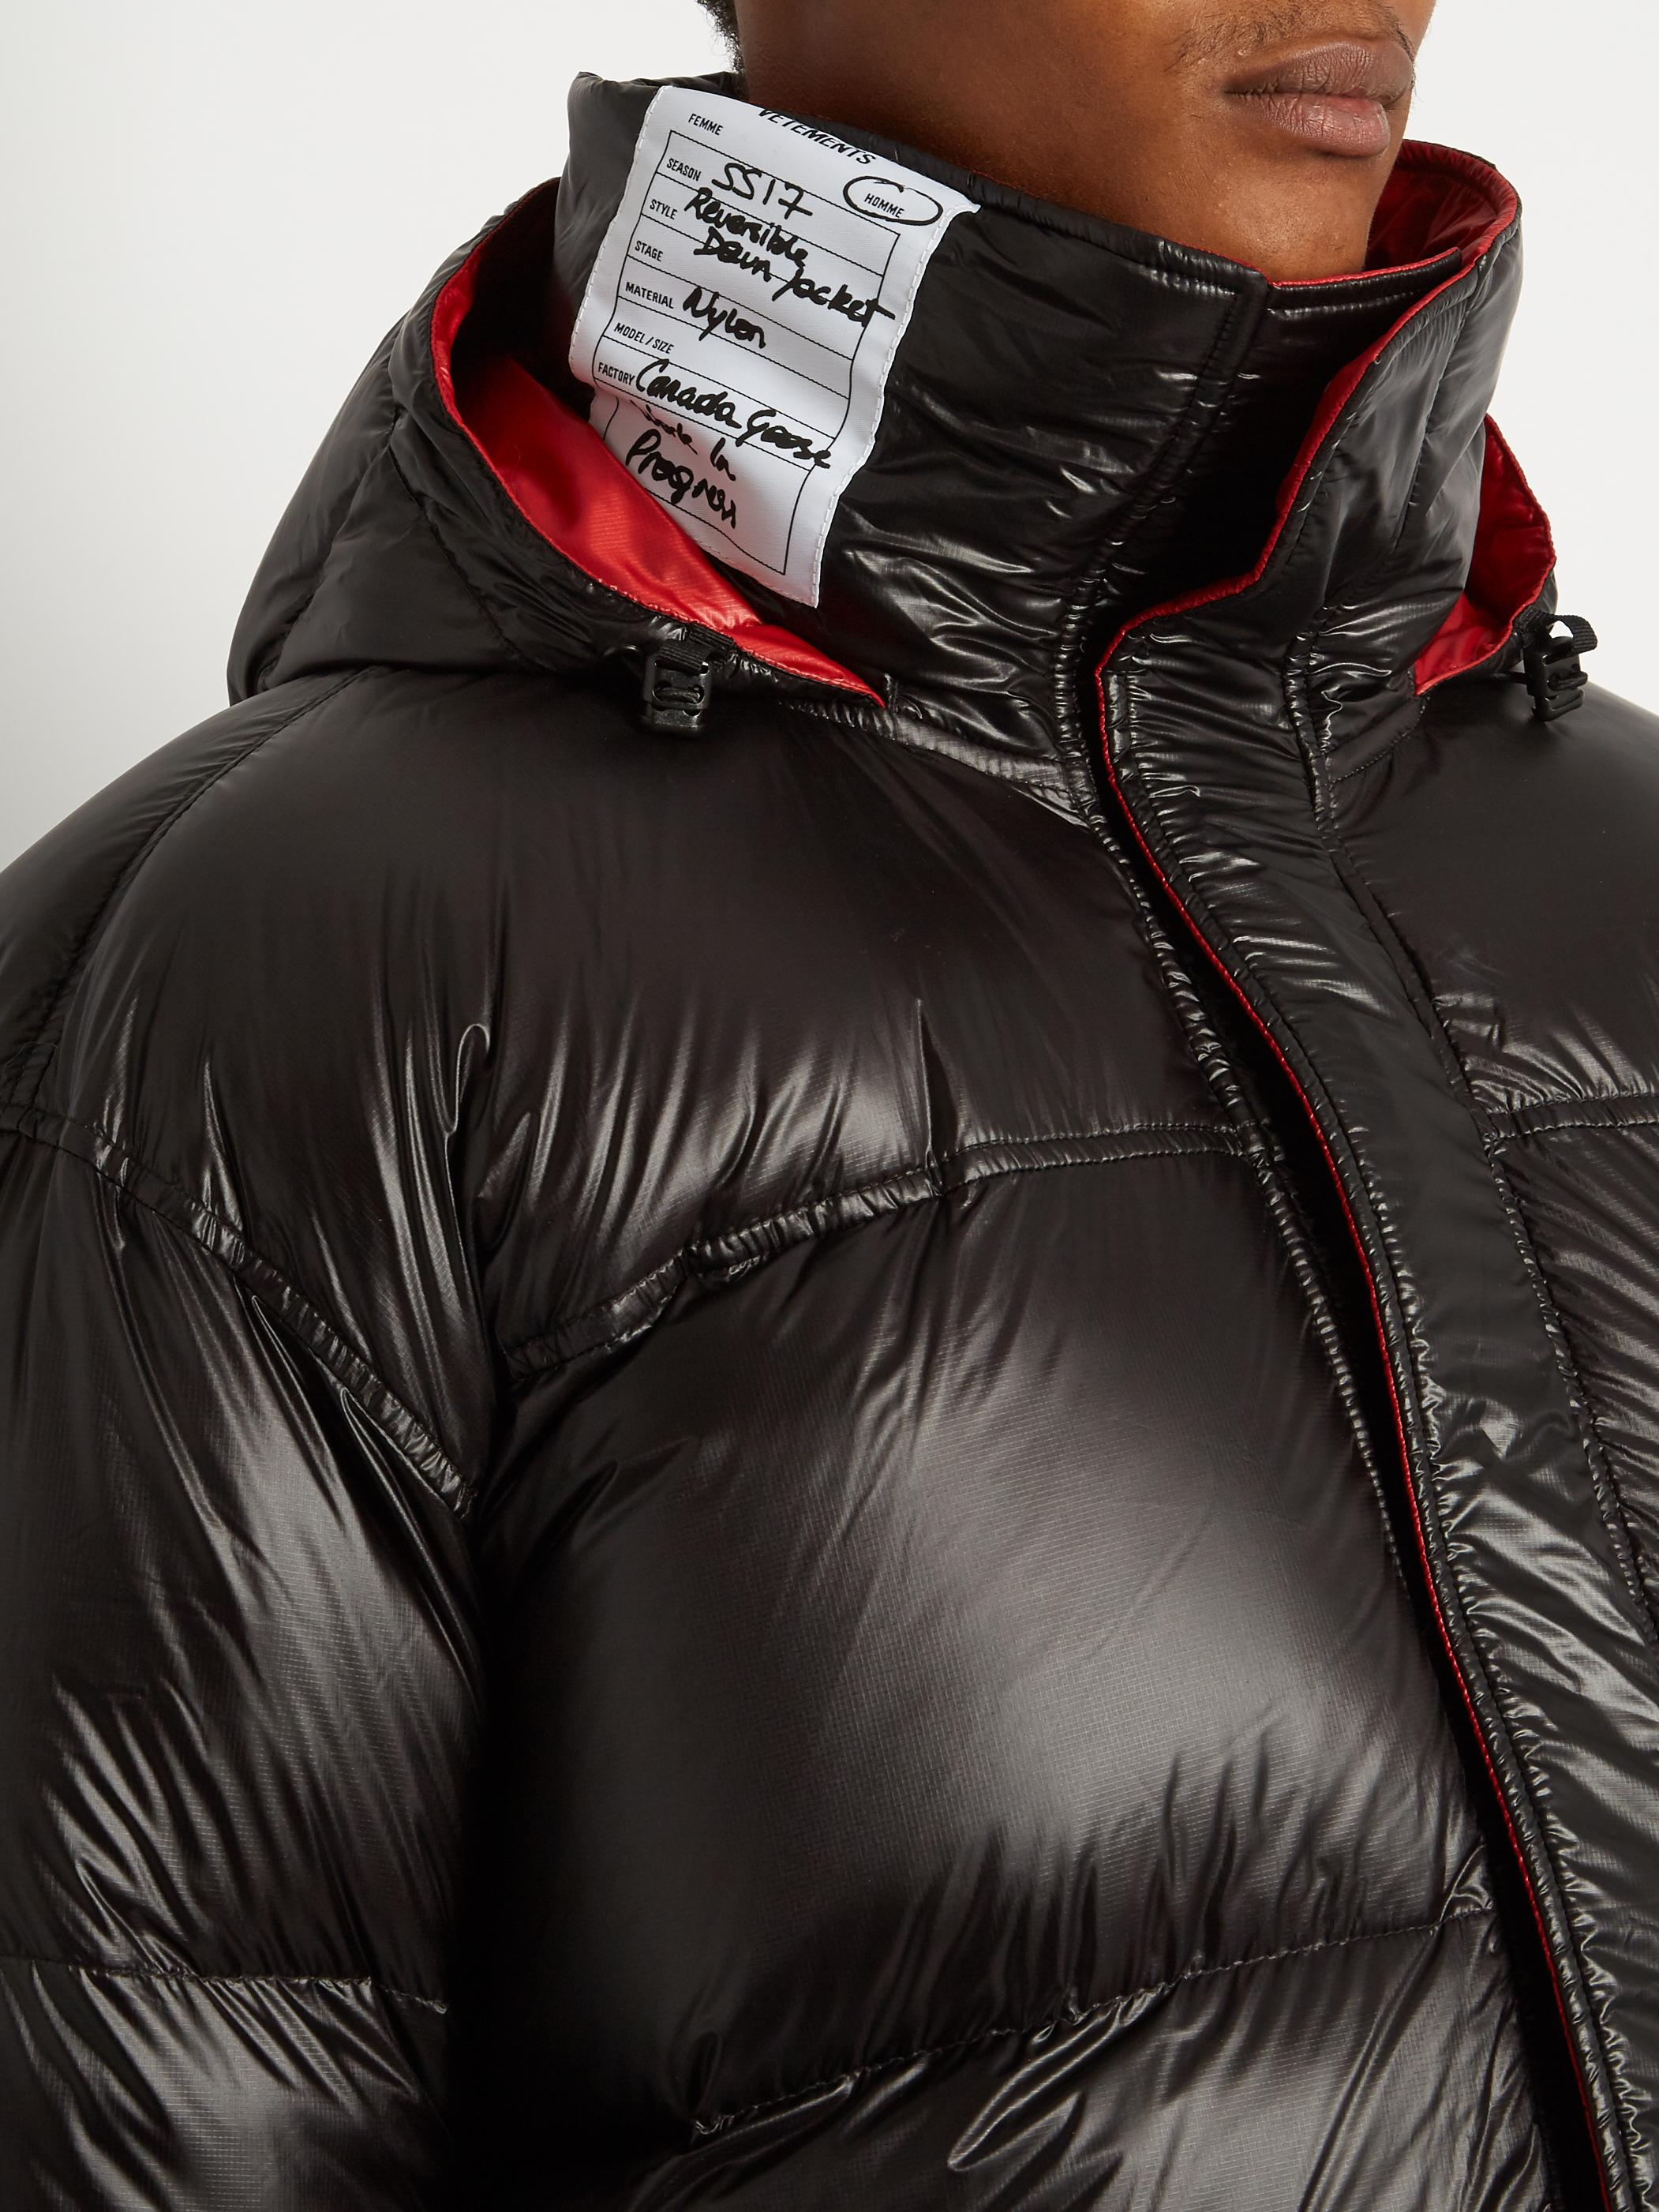 exquisite style great fit details for Vetements X Canada Goose Reversible Down-padded Coat in Black Red ...